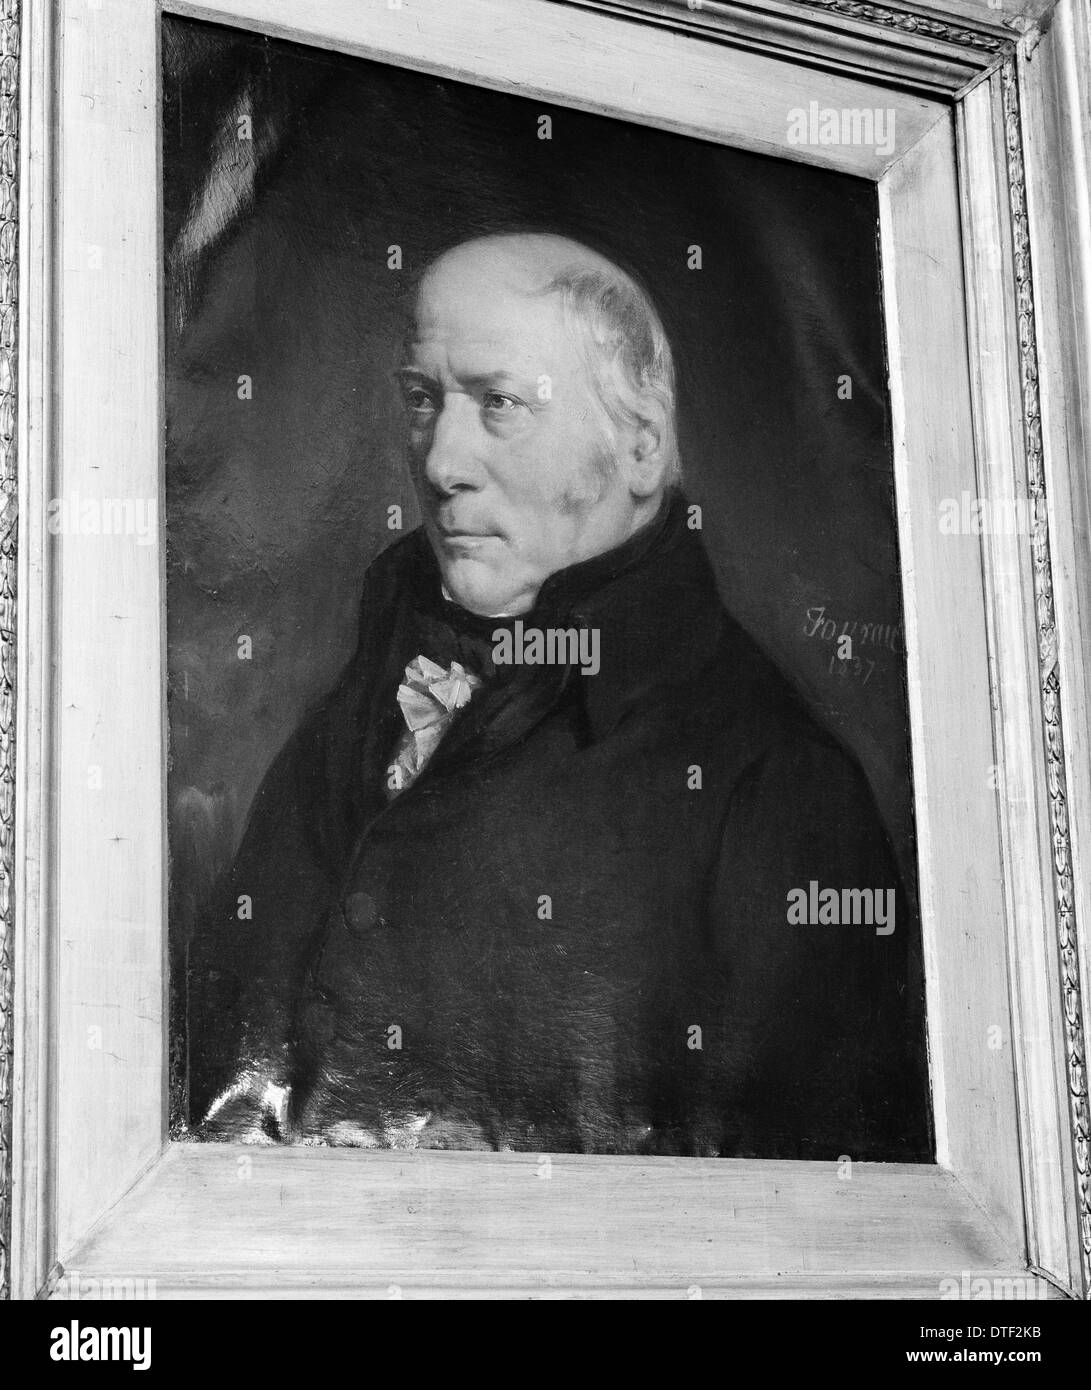 William Smith (1769-1839) - Stock Image